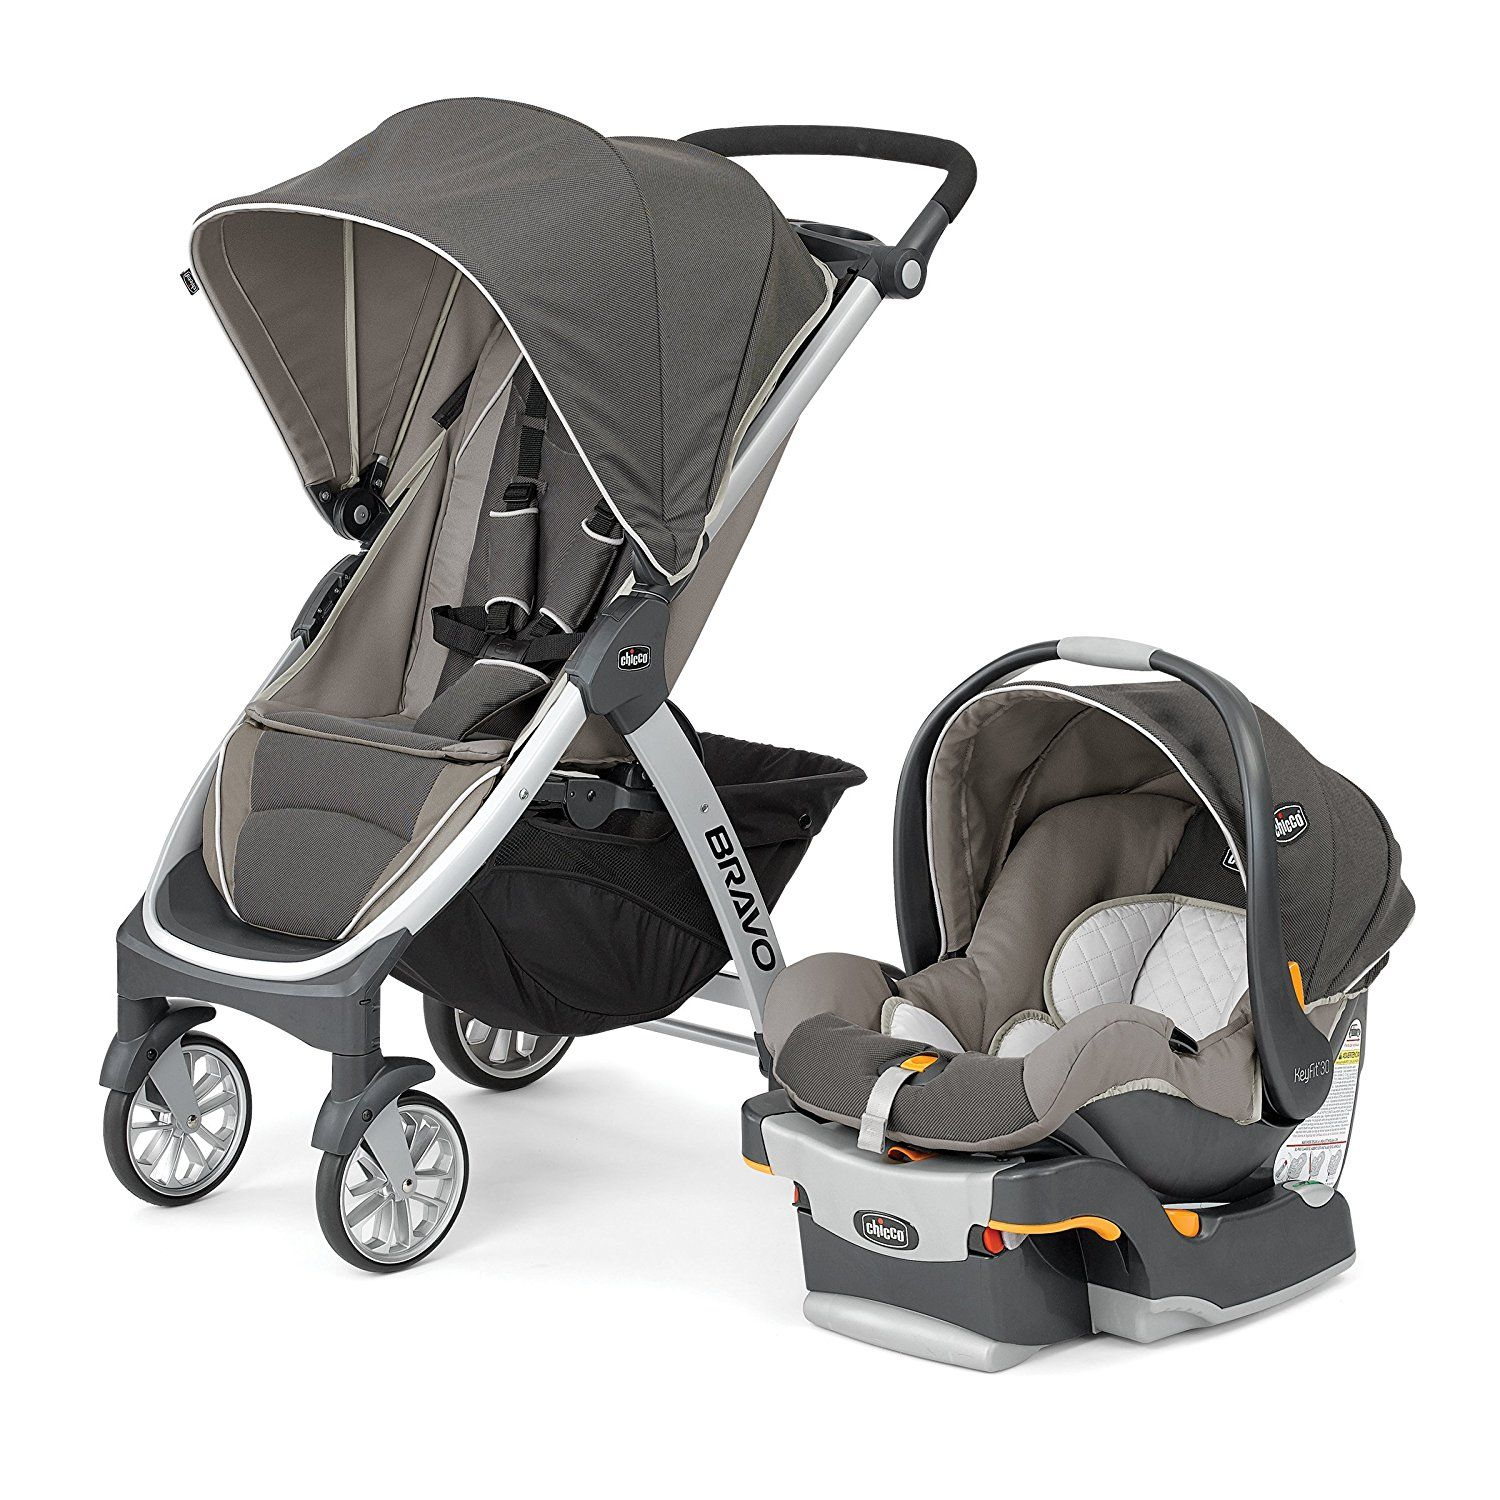 This trio travel system is the latest and most advance of all strollers Key Fit